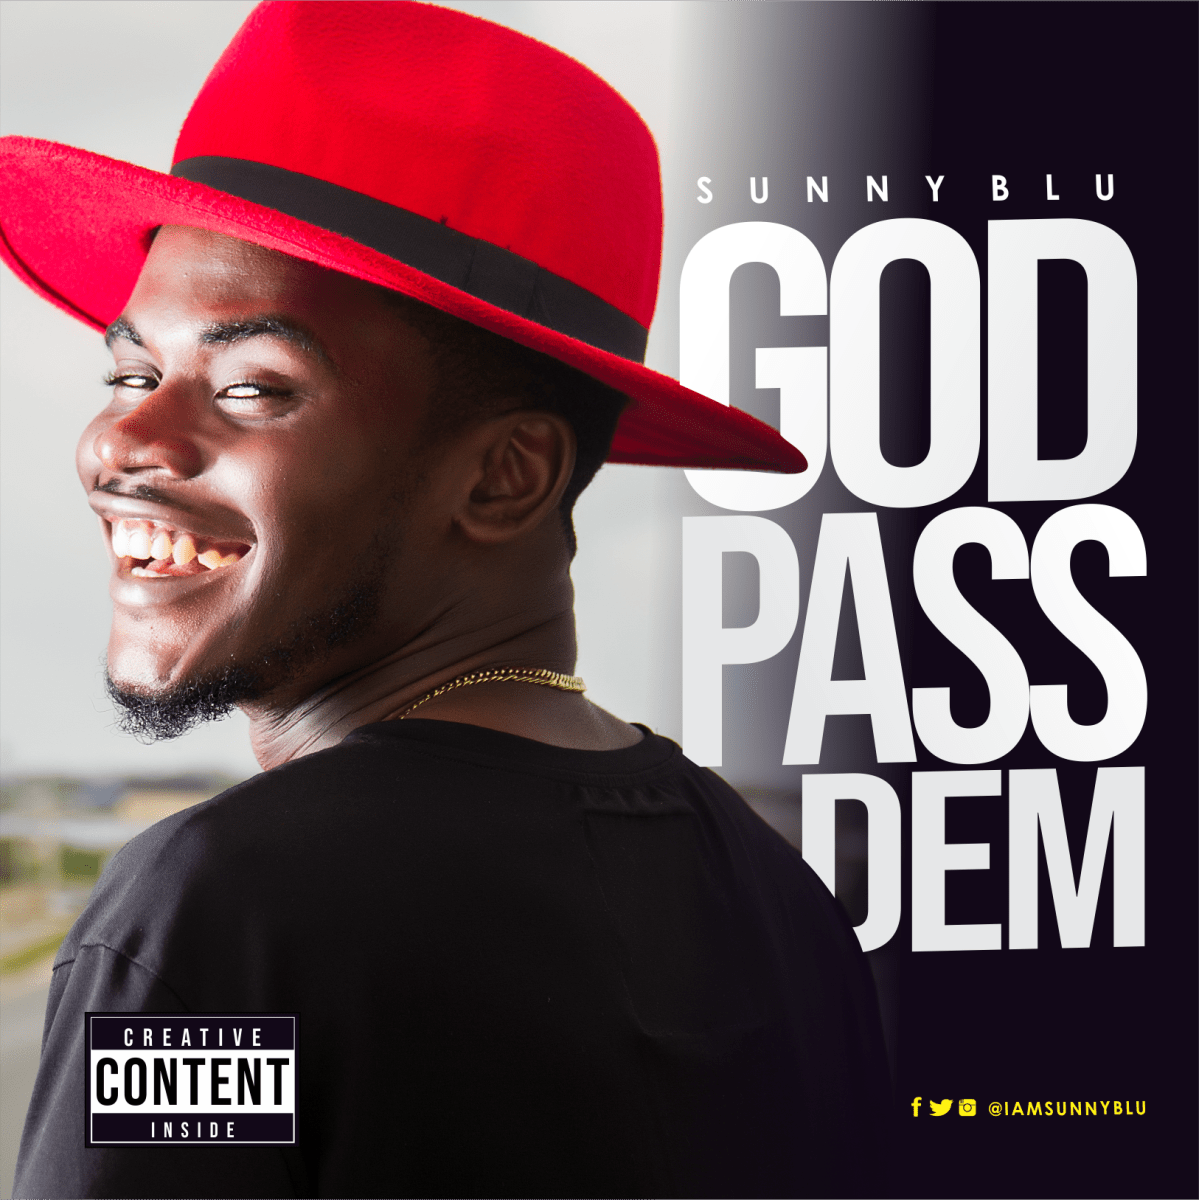 DOWNLOAD Music: SunnyBlu - God Pass Dem